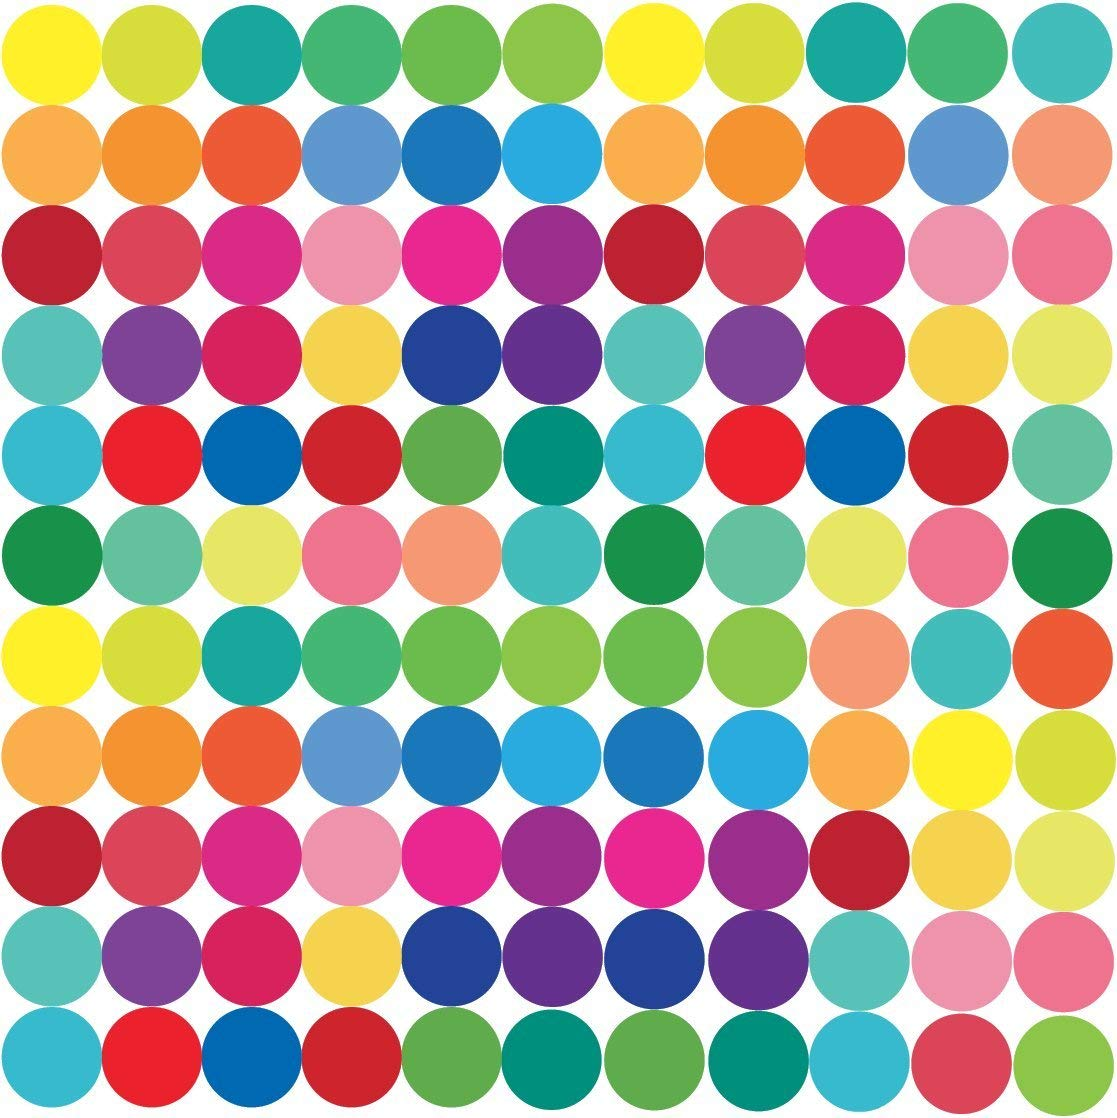 Buy Gold Wall Decals Polka Dots Wall Stickers Vinyl Round